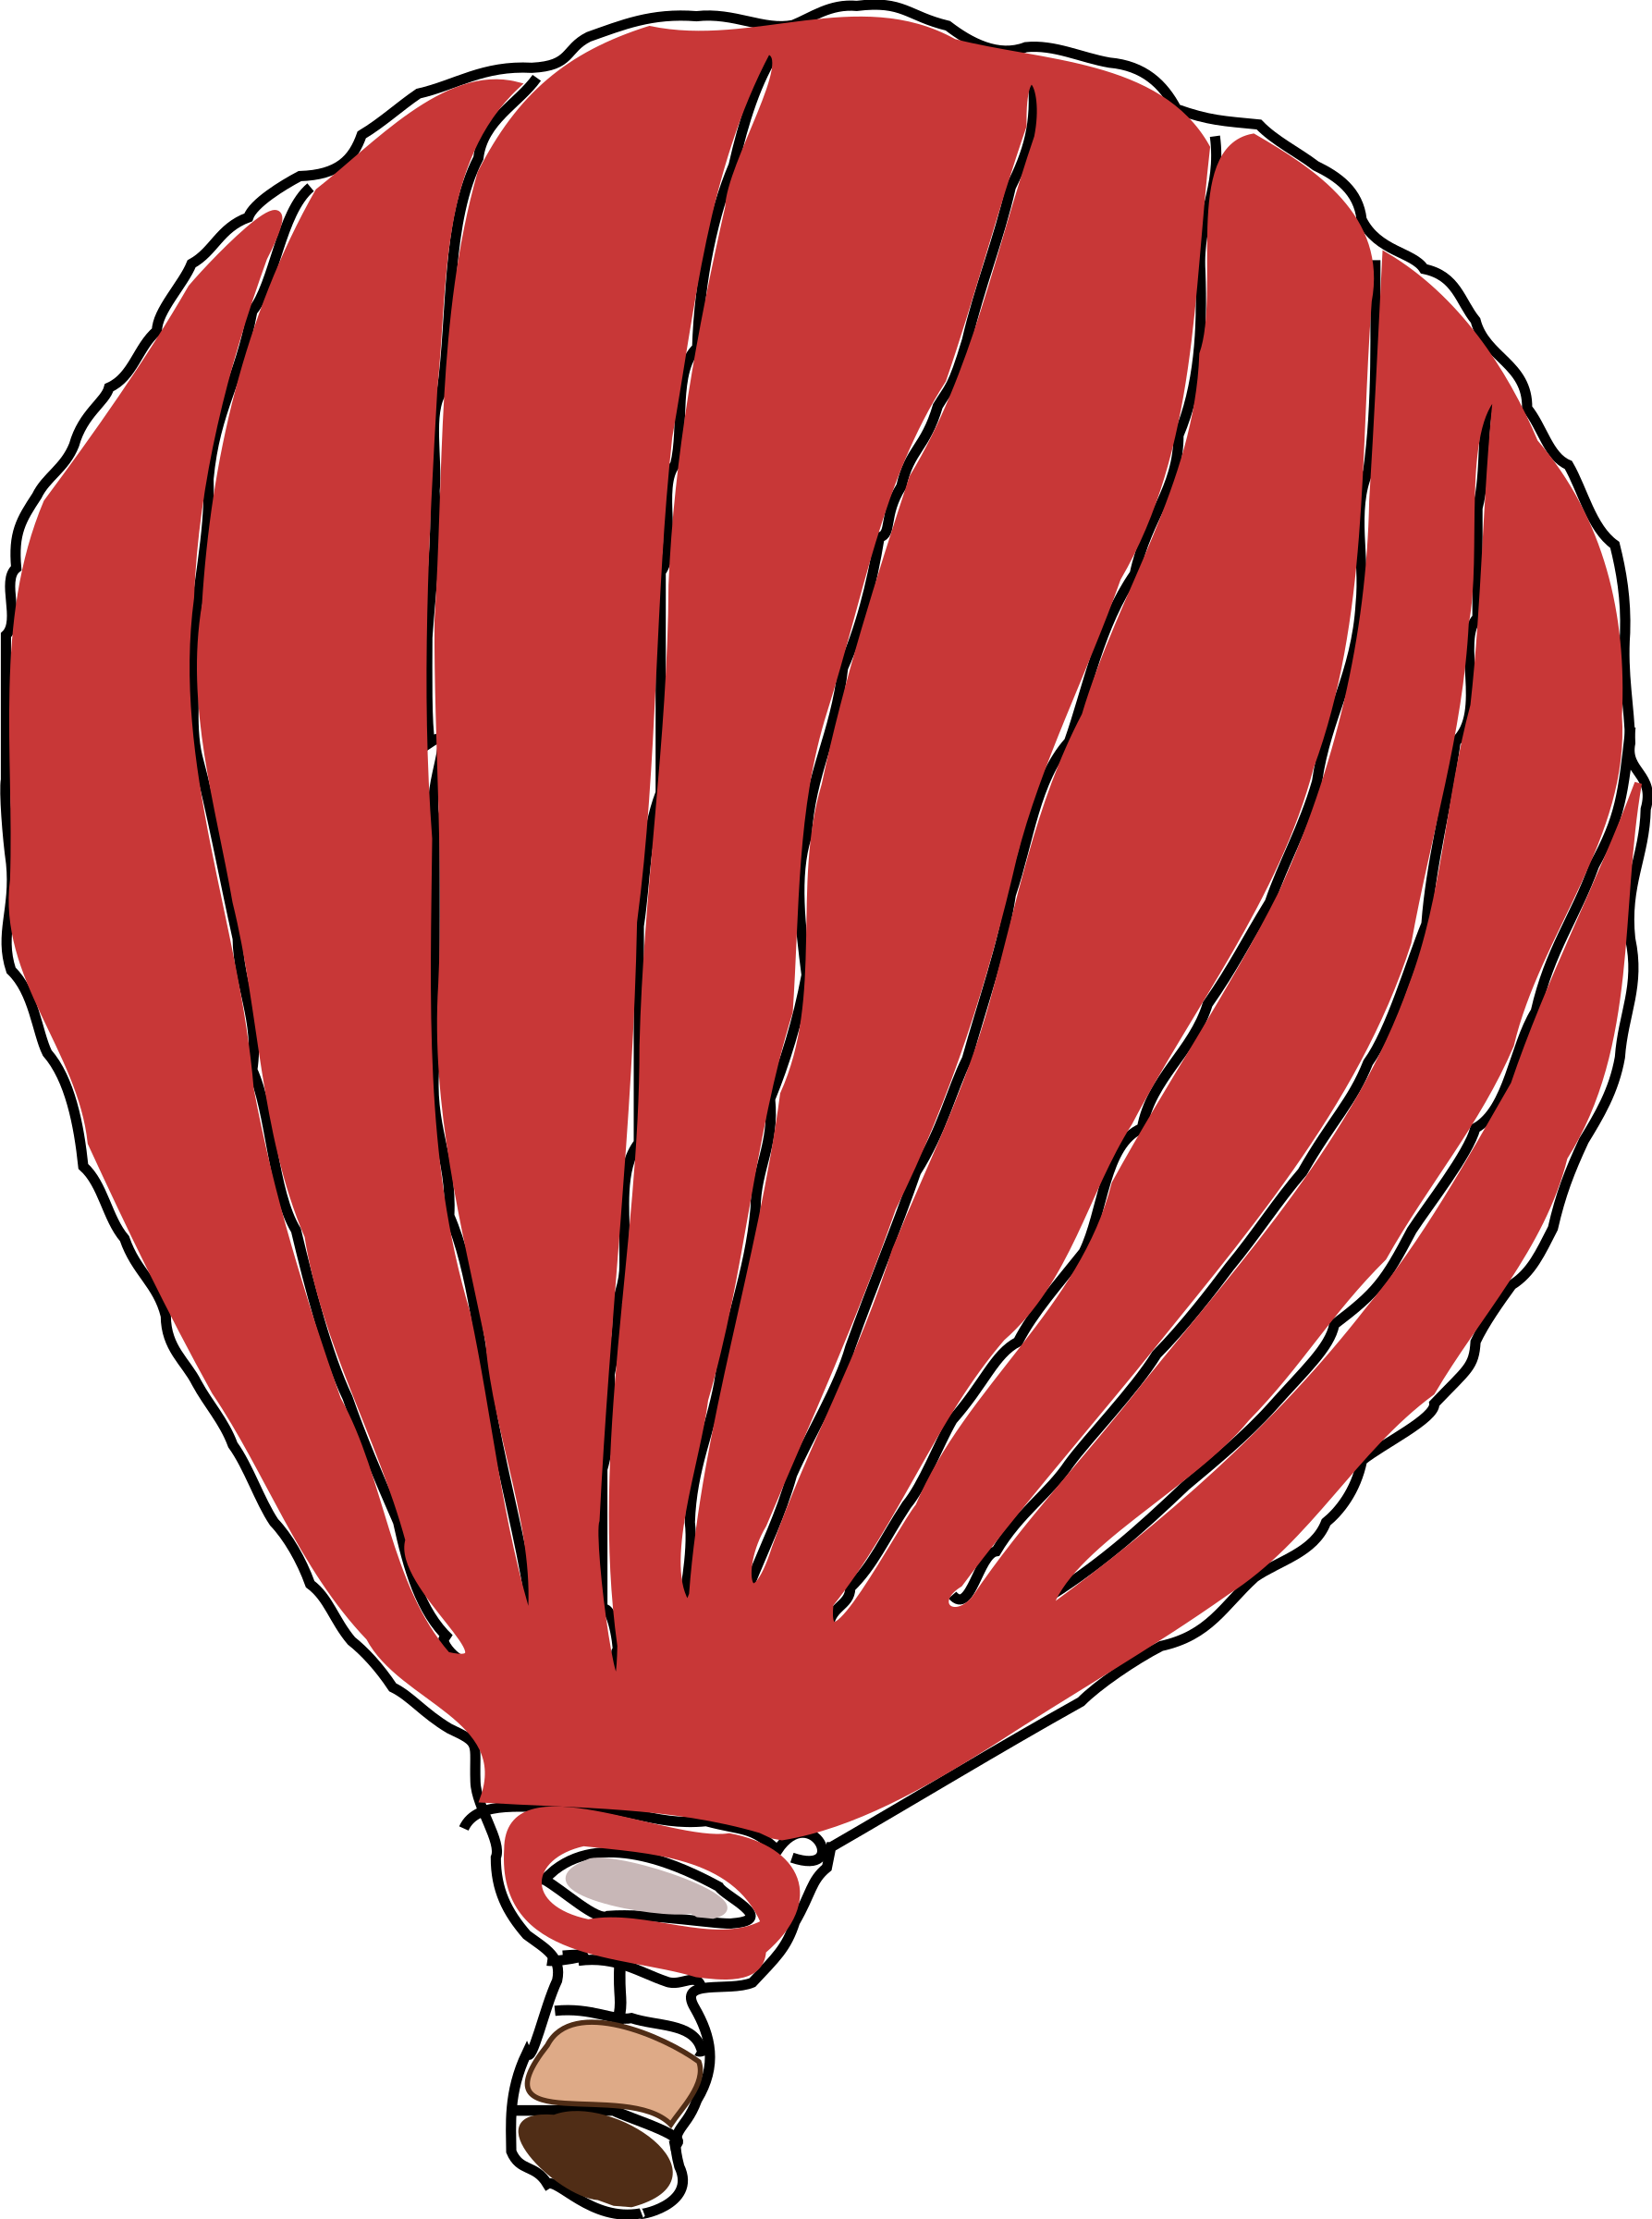 Big image png. Red clipart hot air balloon